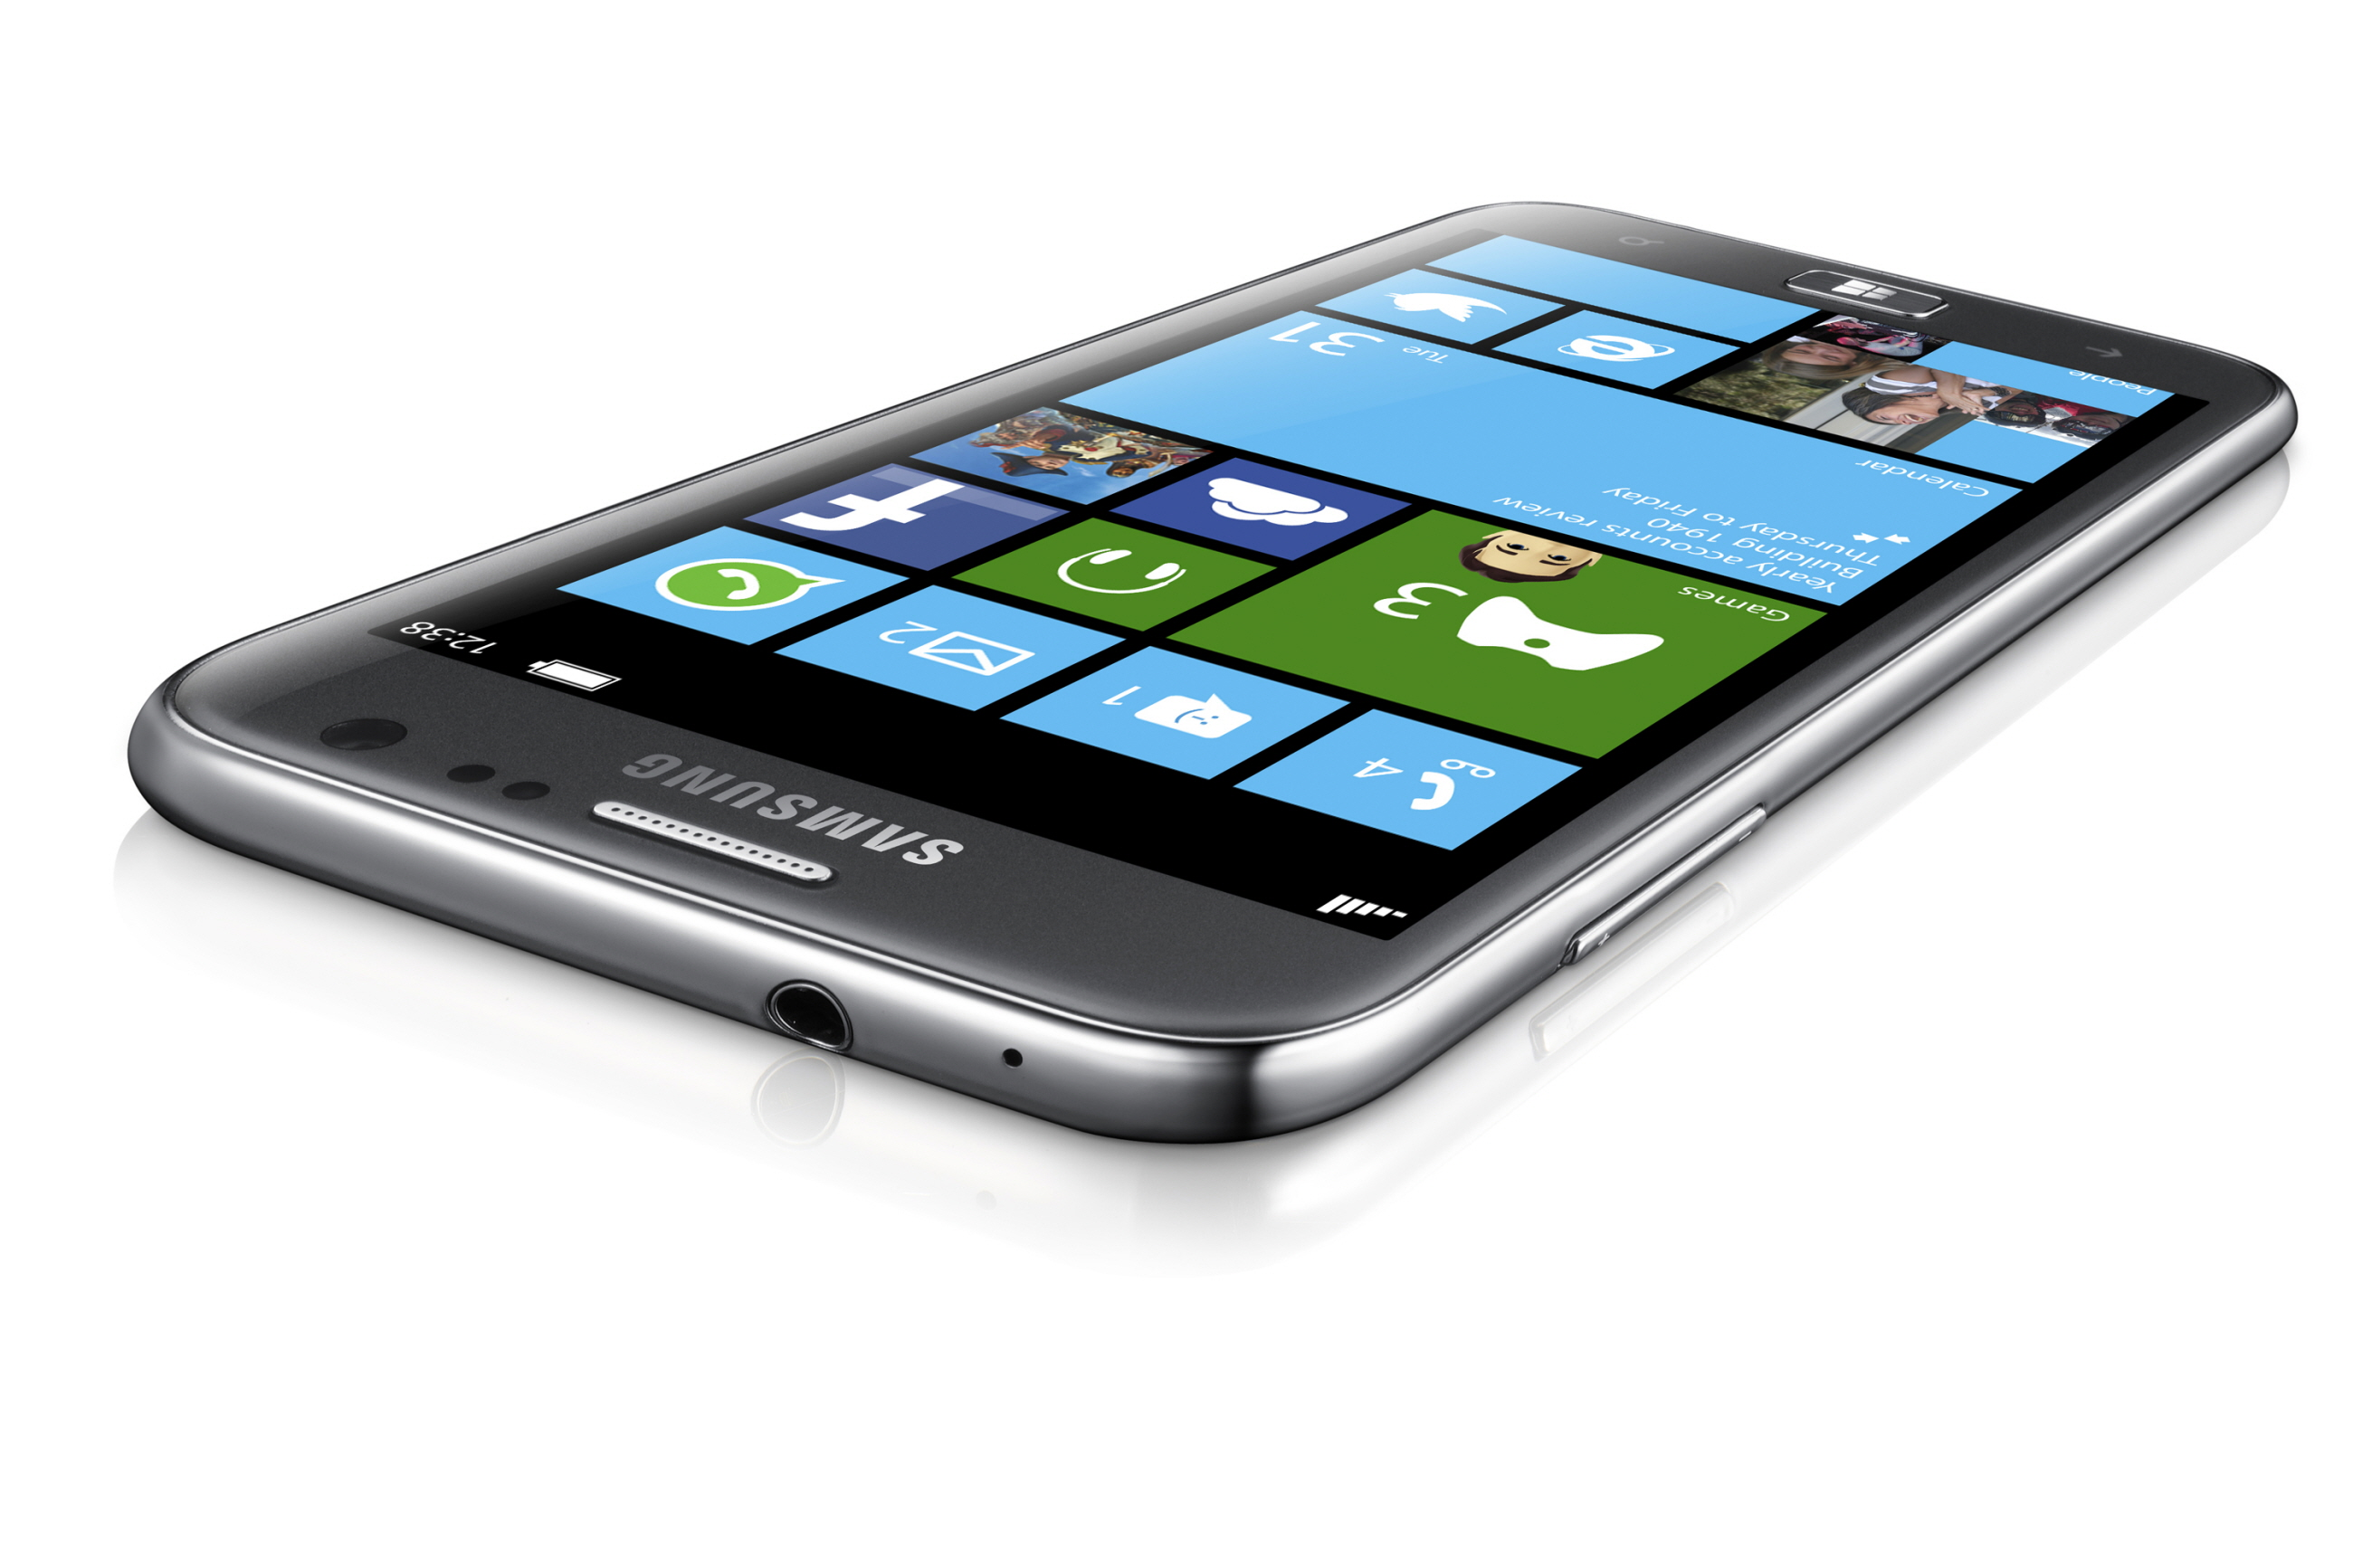 samsung ativ line outed at ifa windows 8 rt and phone 8 devices revealed. Black Bedroom Furniture Sets. Home Design Ideas